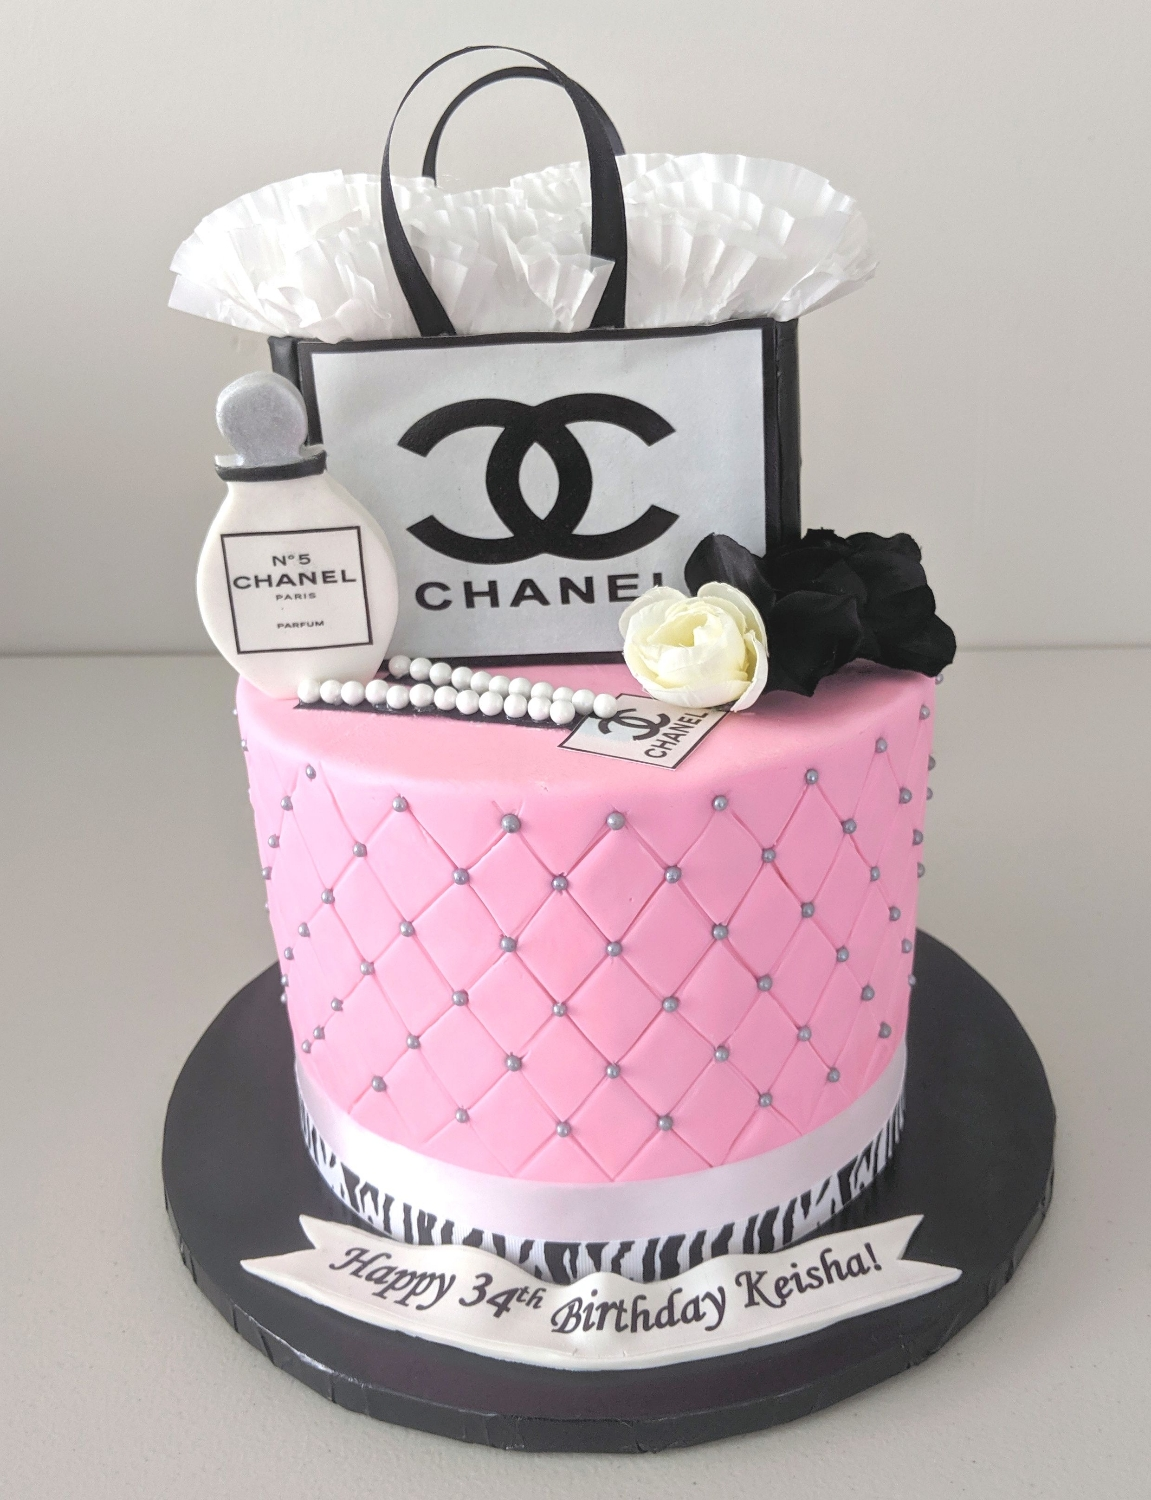 Chanel Love